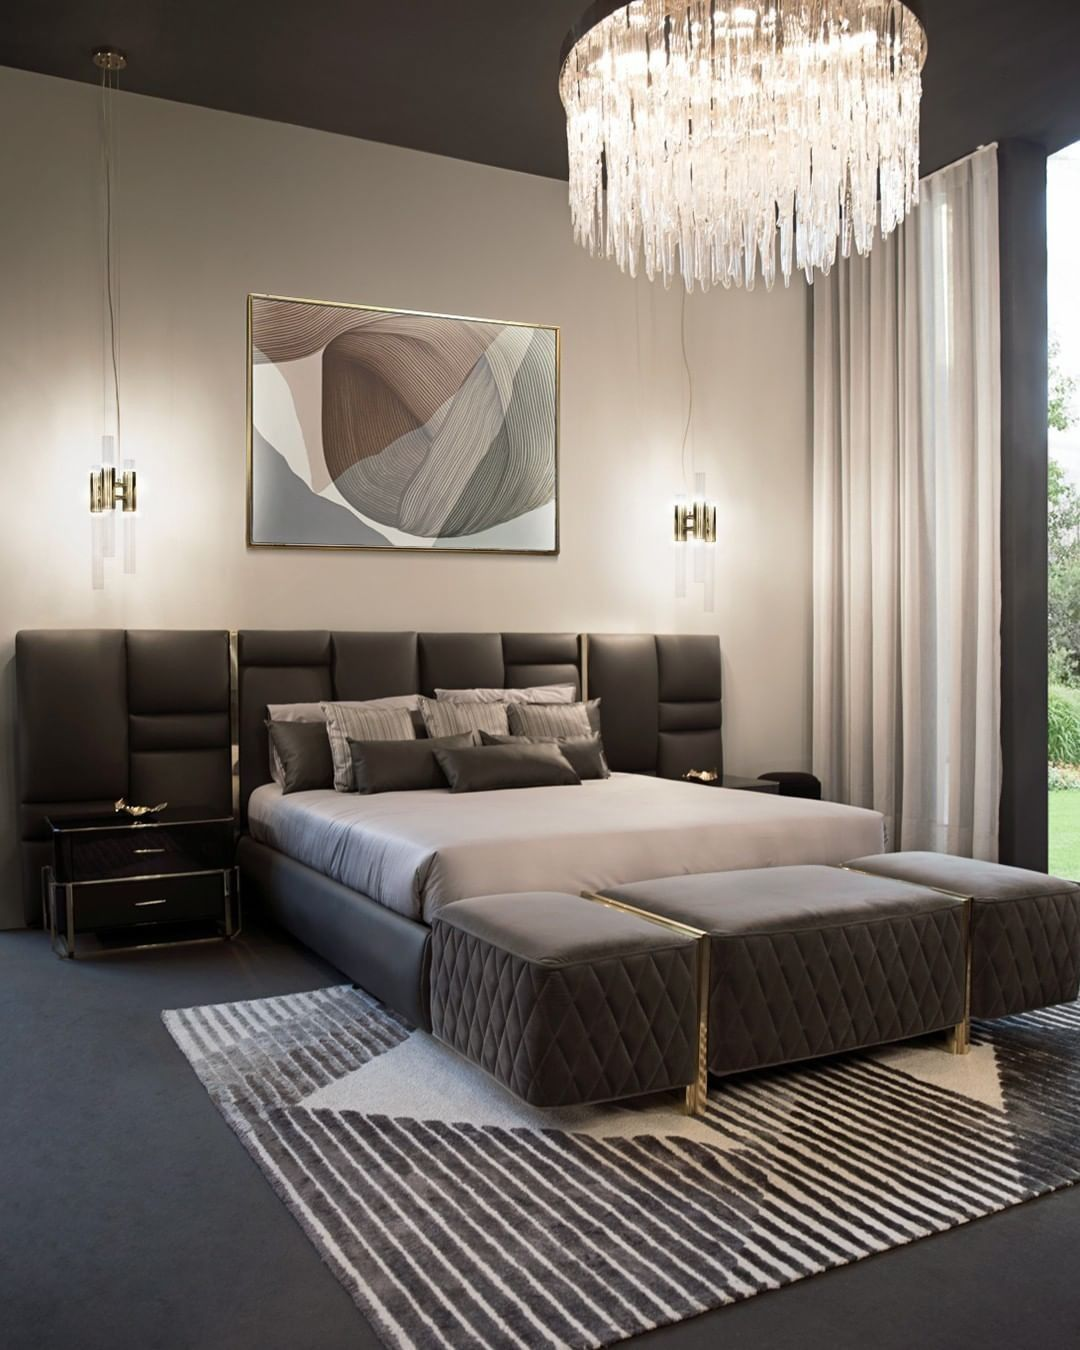 Luxus Schlaf Zimmer Mit Grossem Bett Luxury Bedroom Decor Master